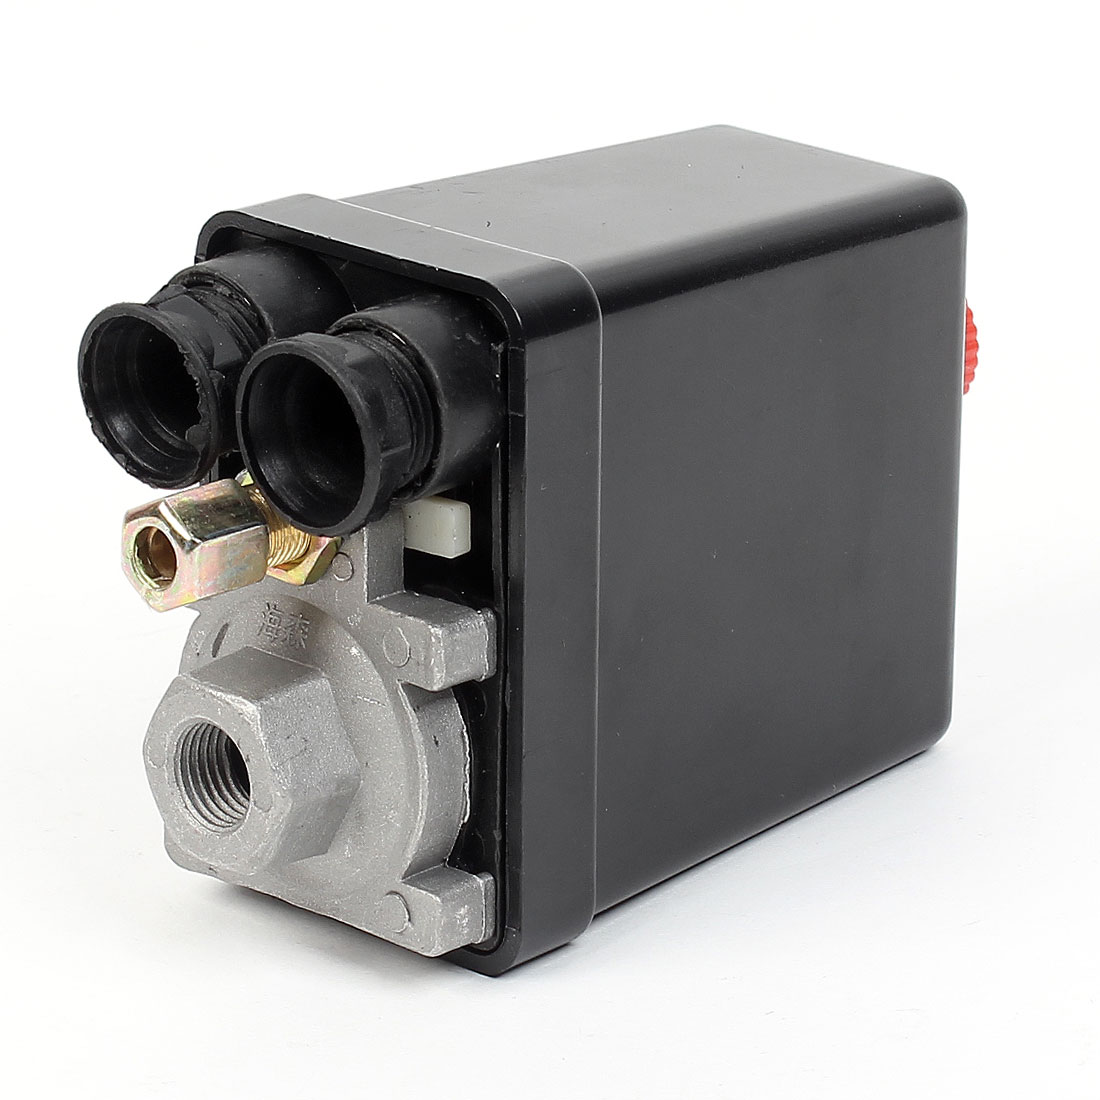 AC 240V 20A 175 PSI Pressure Switch Valve Black for Air Compressor